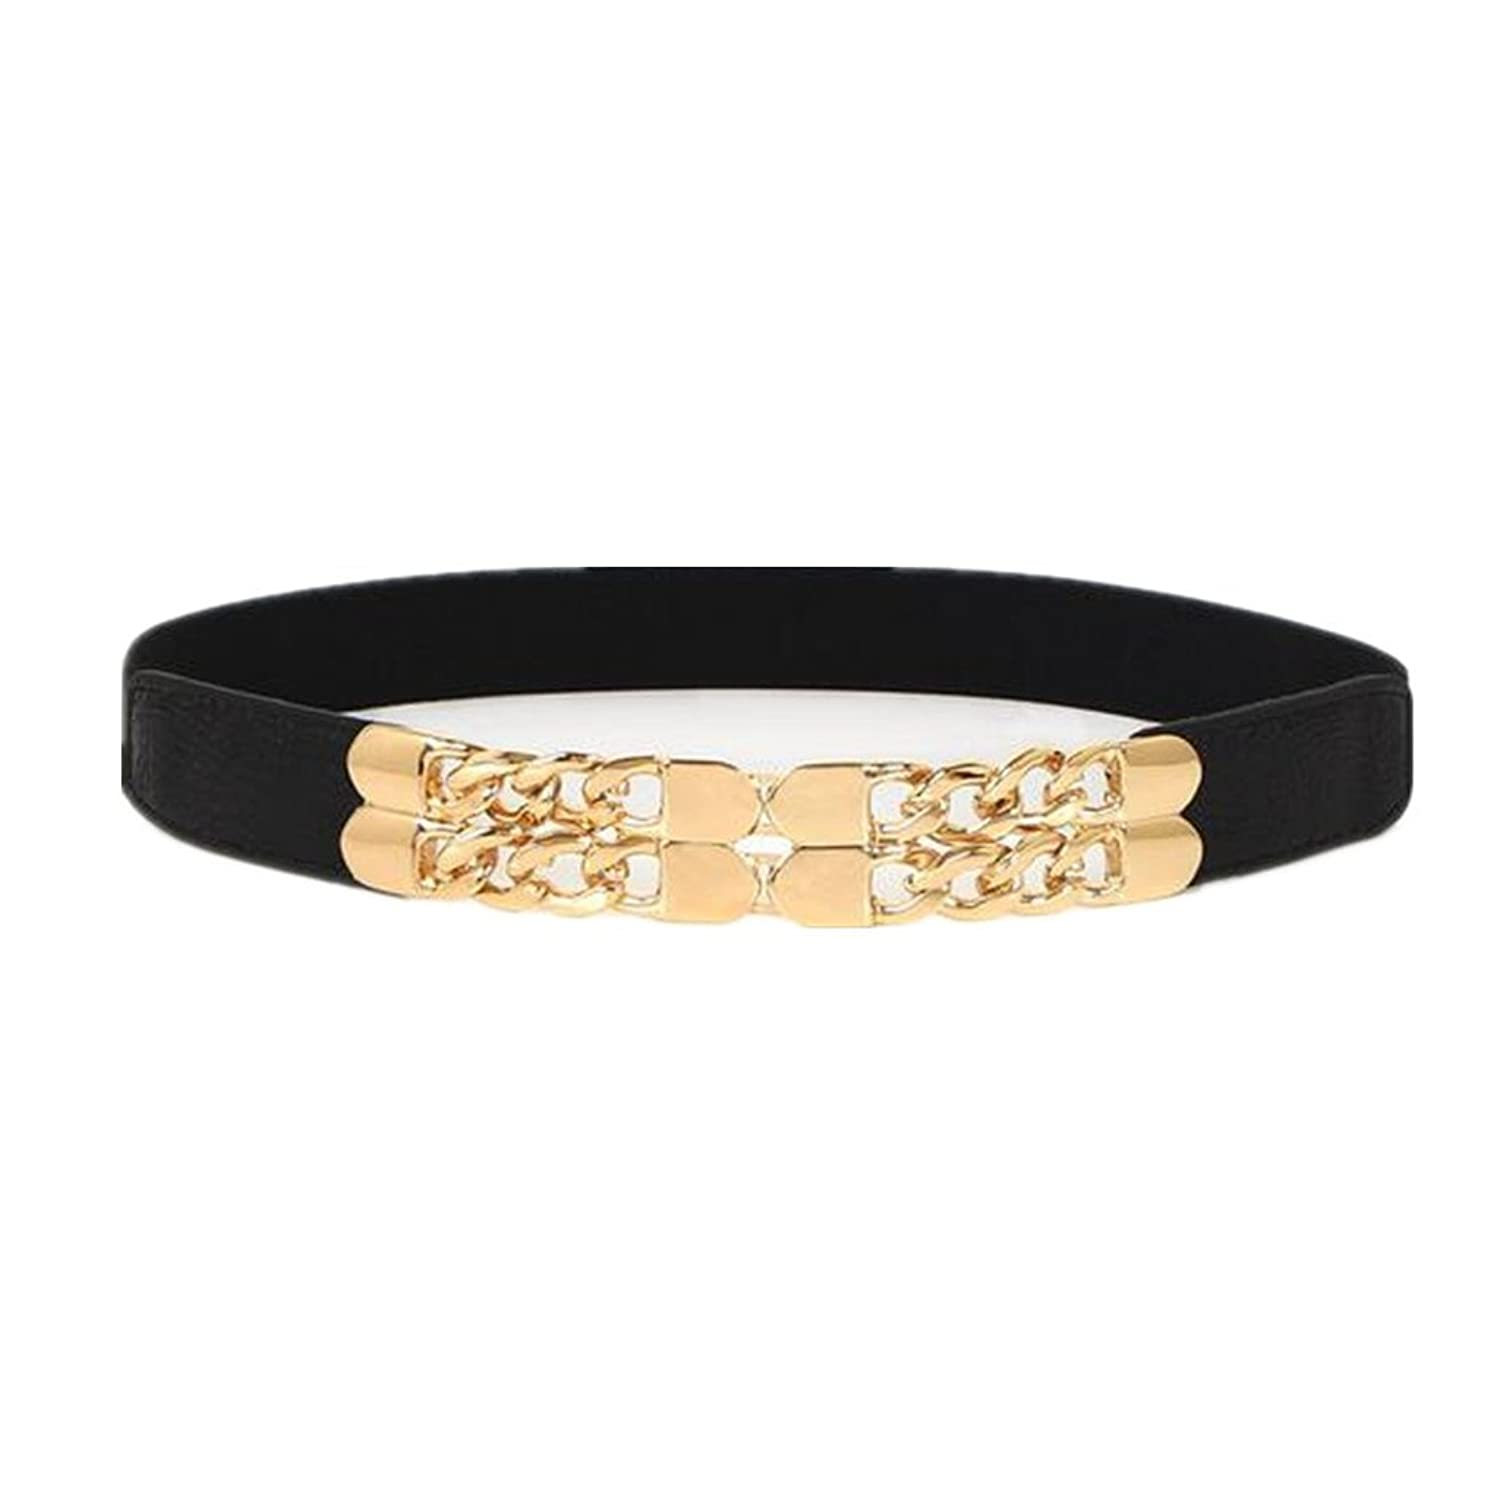 HLDIY Alloy Gold Buckle Women Elastic Waist Belt Three Colors Available